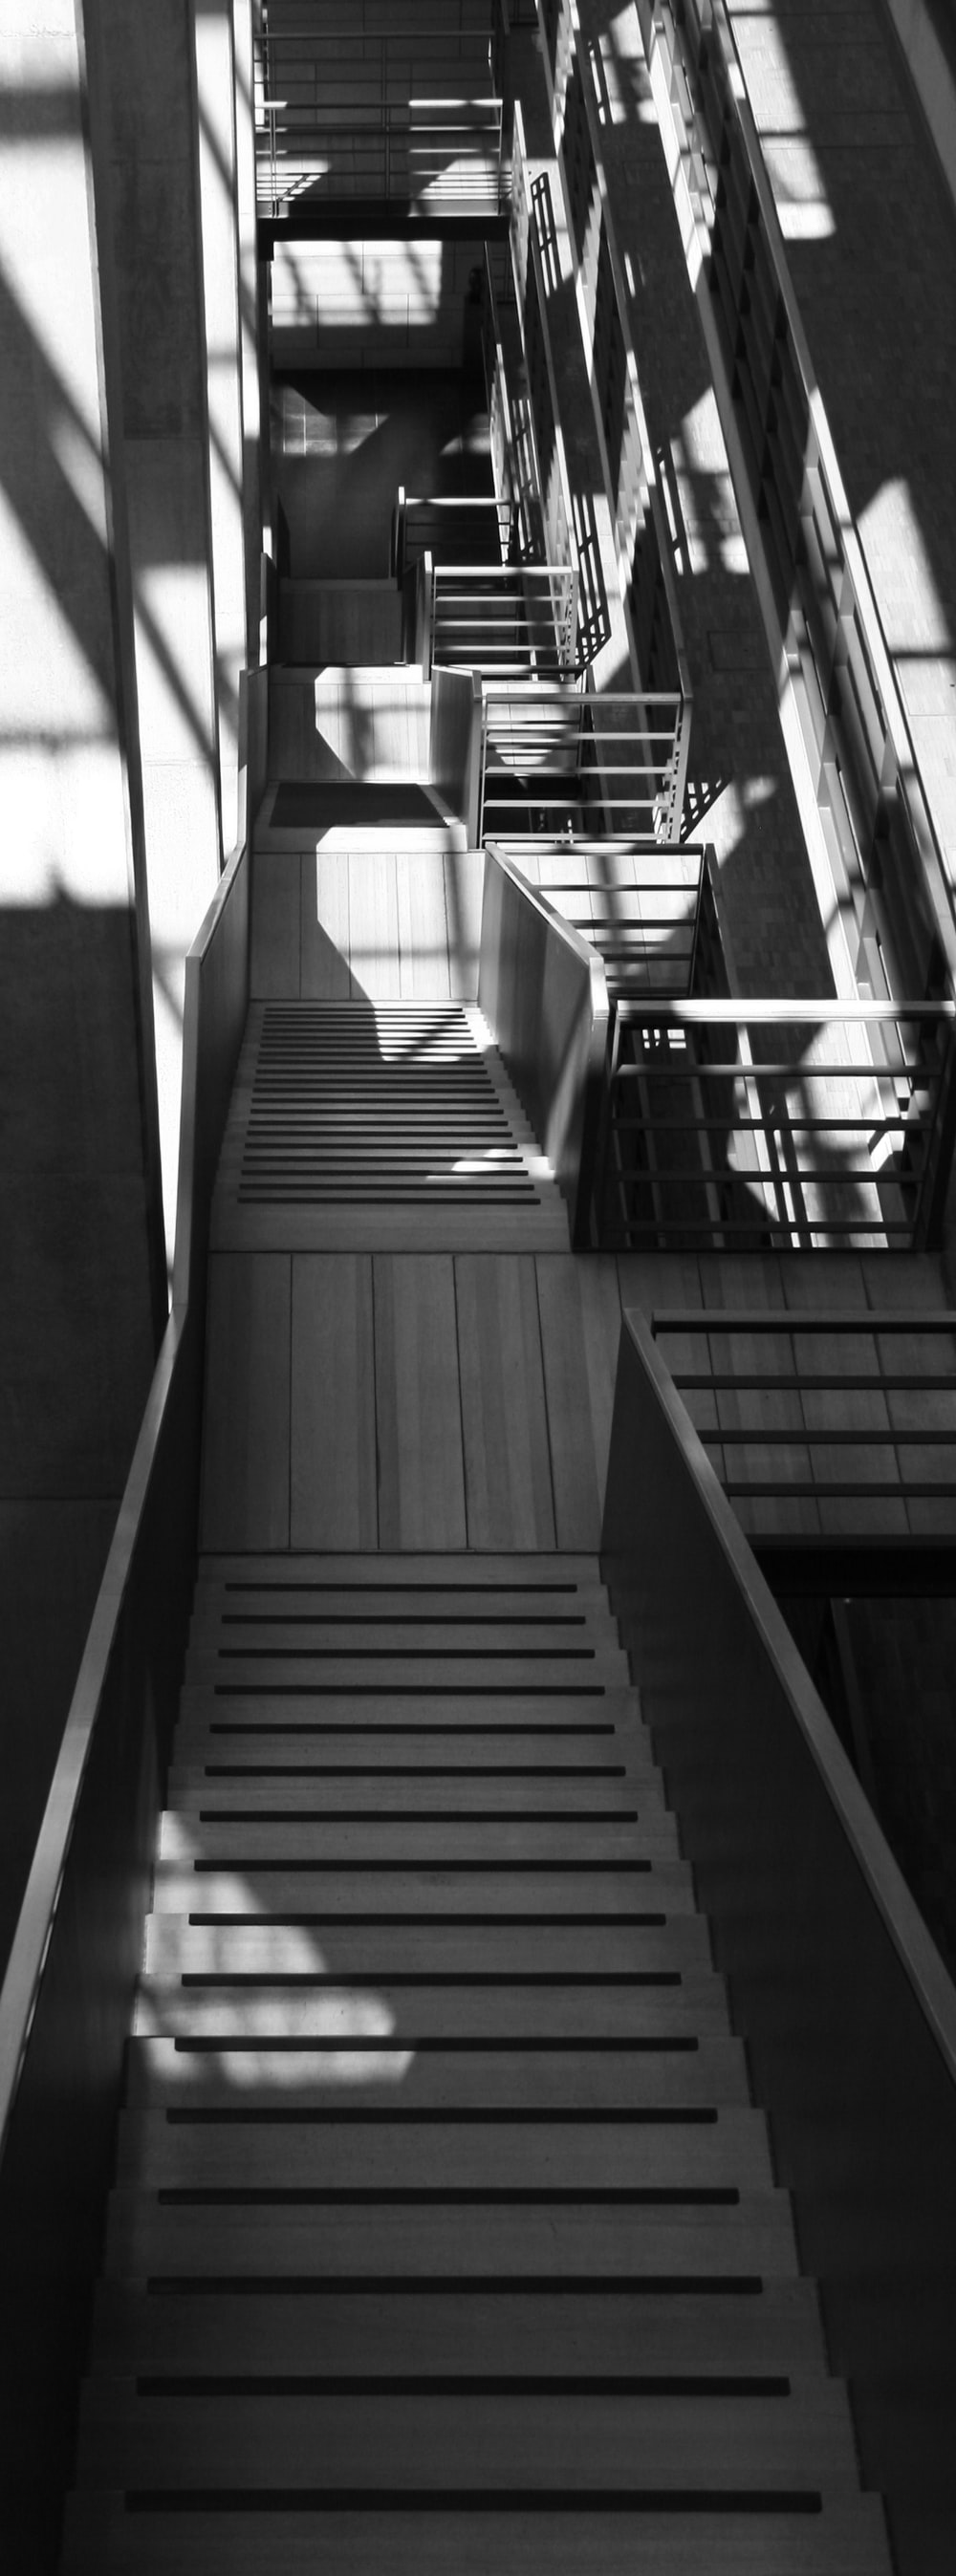 grayscale photo of stair